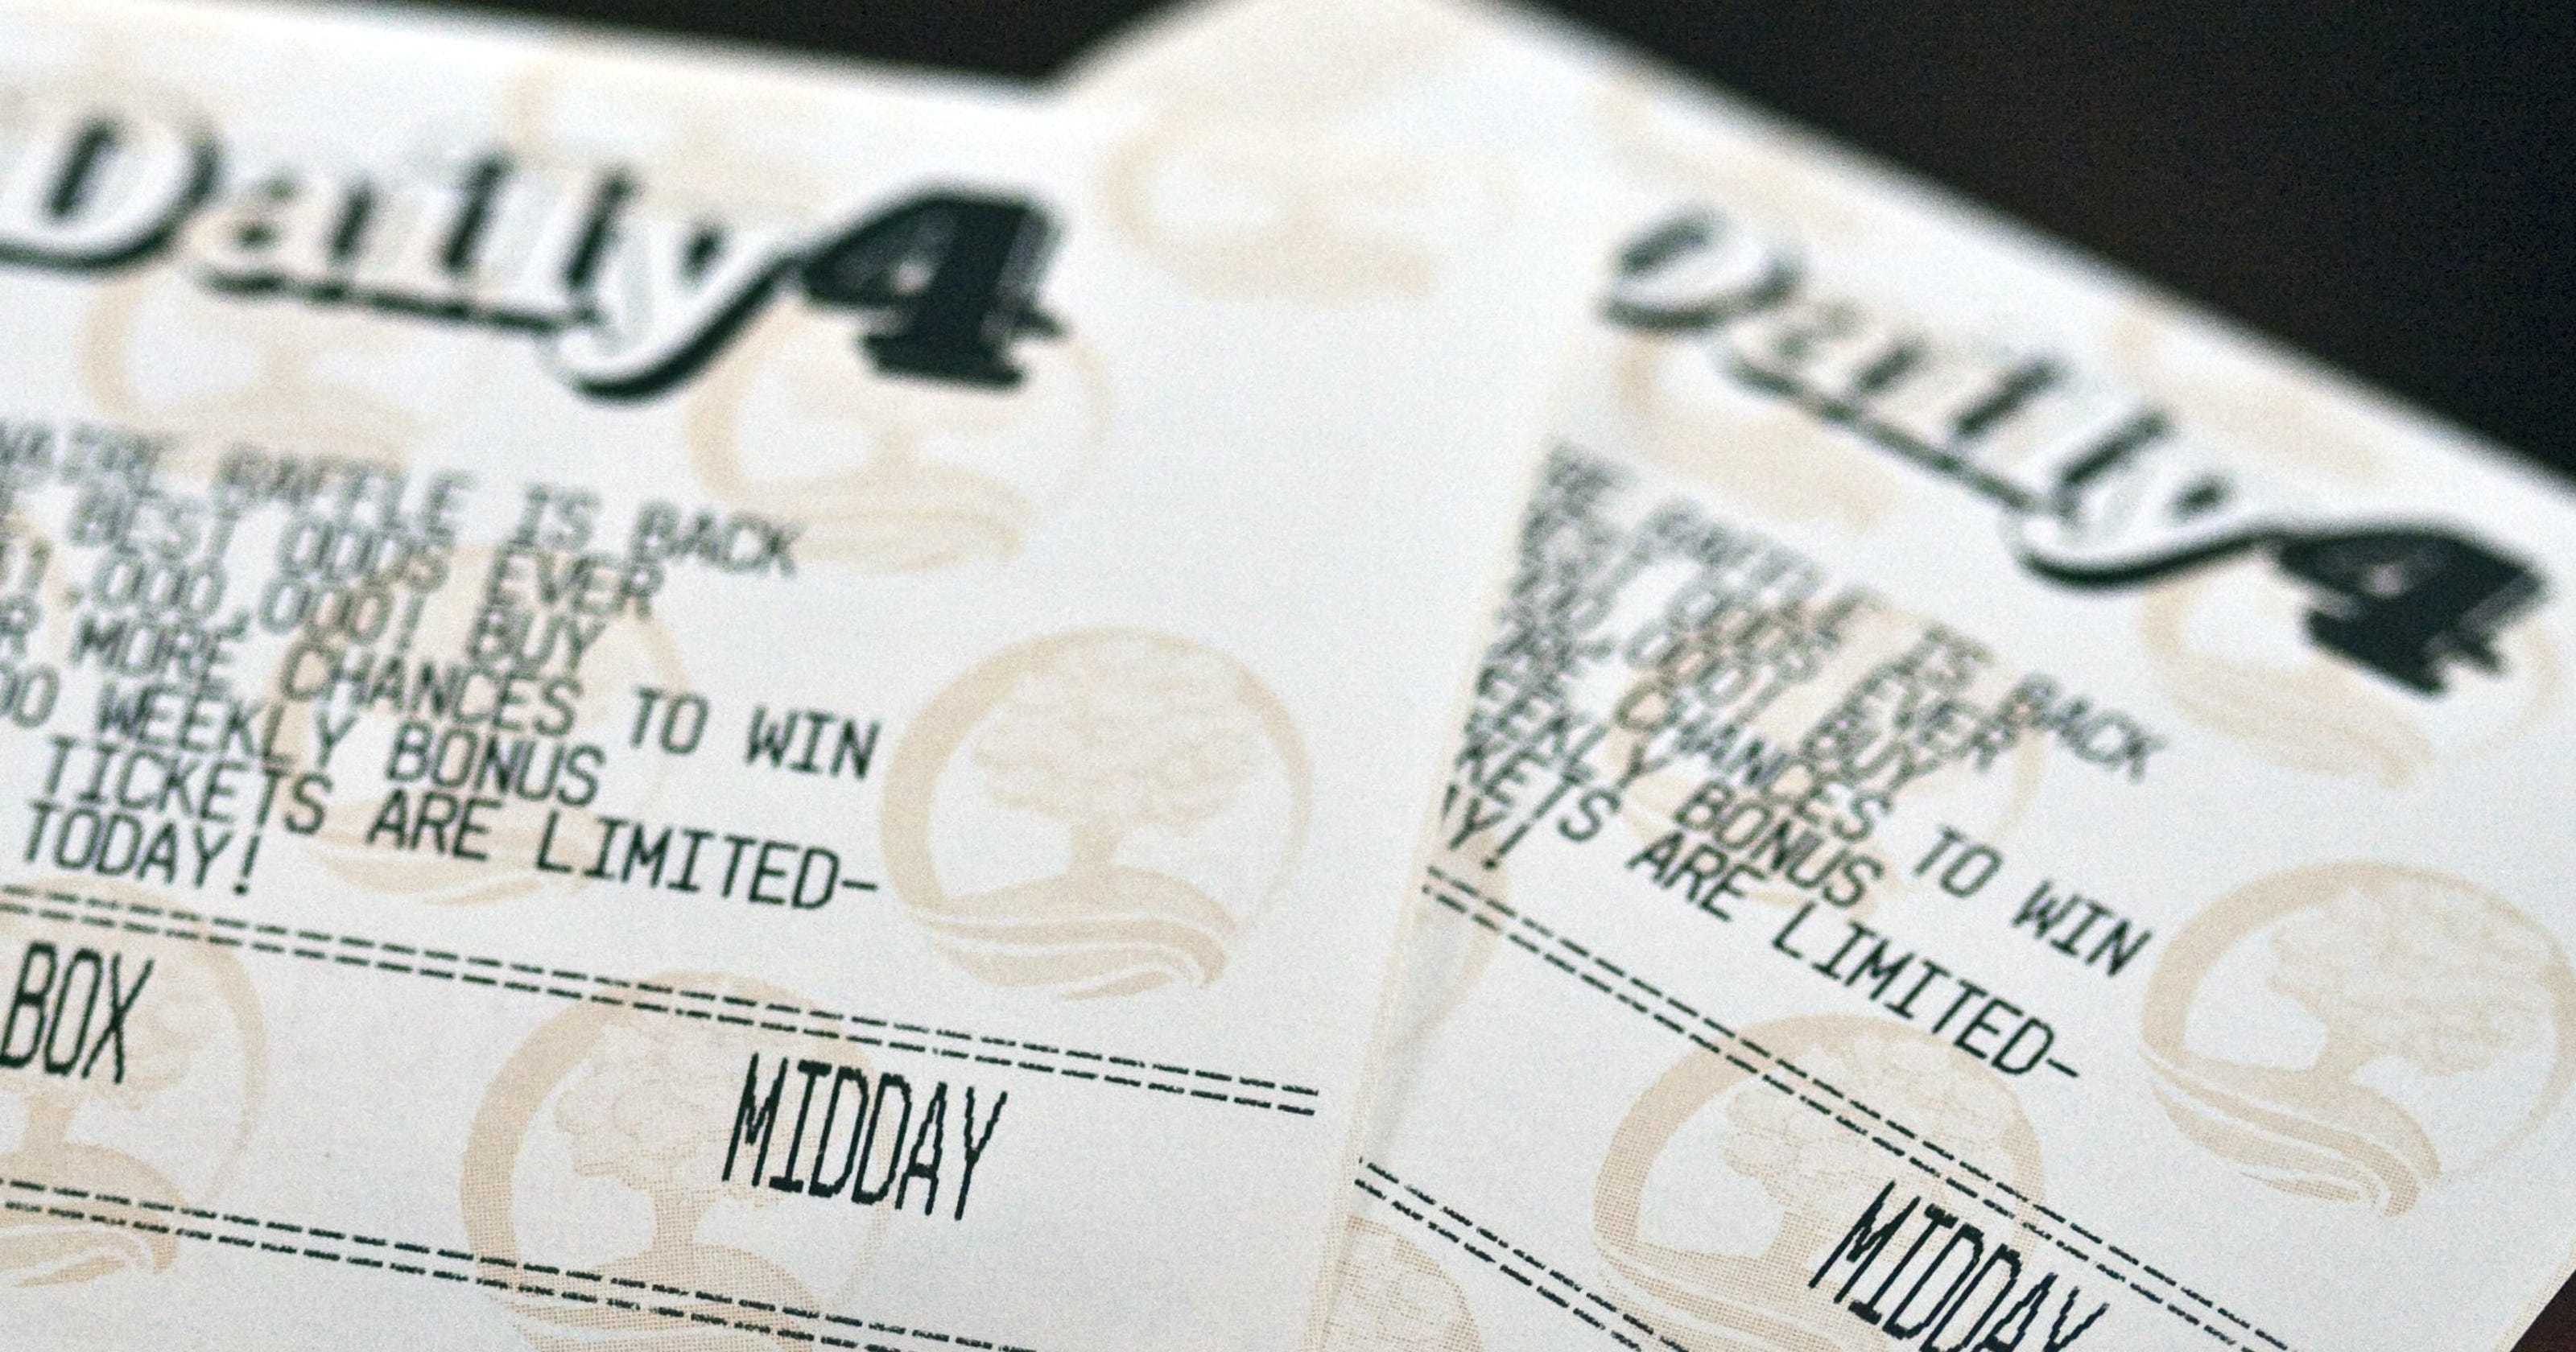 Lottery numbers come up twice in 1 day